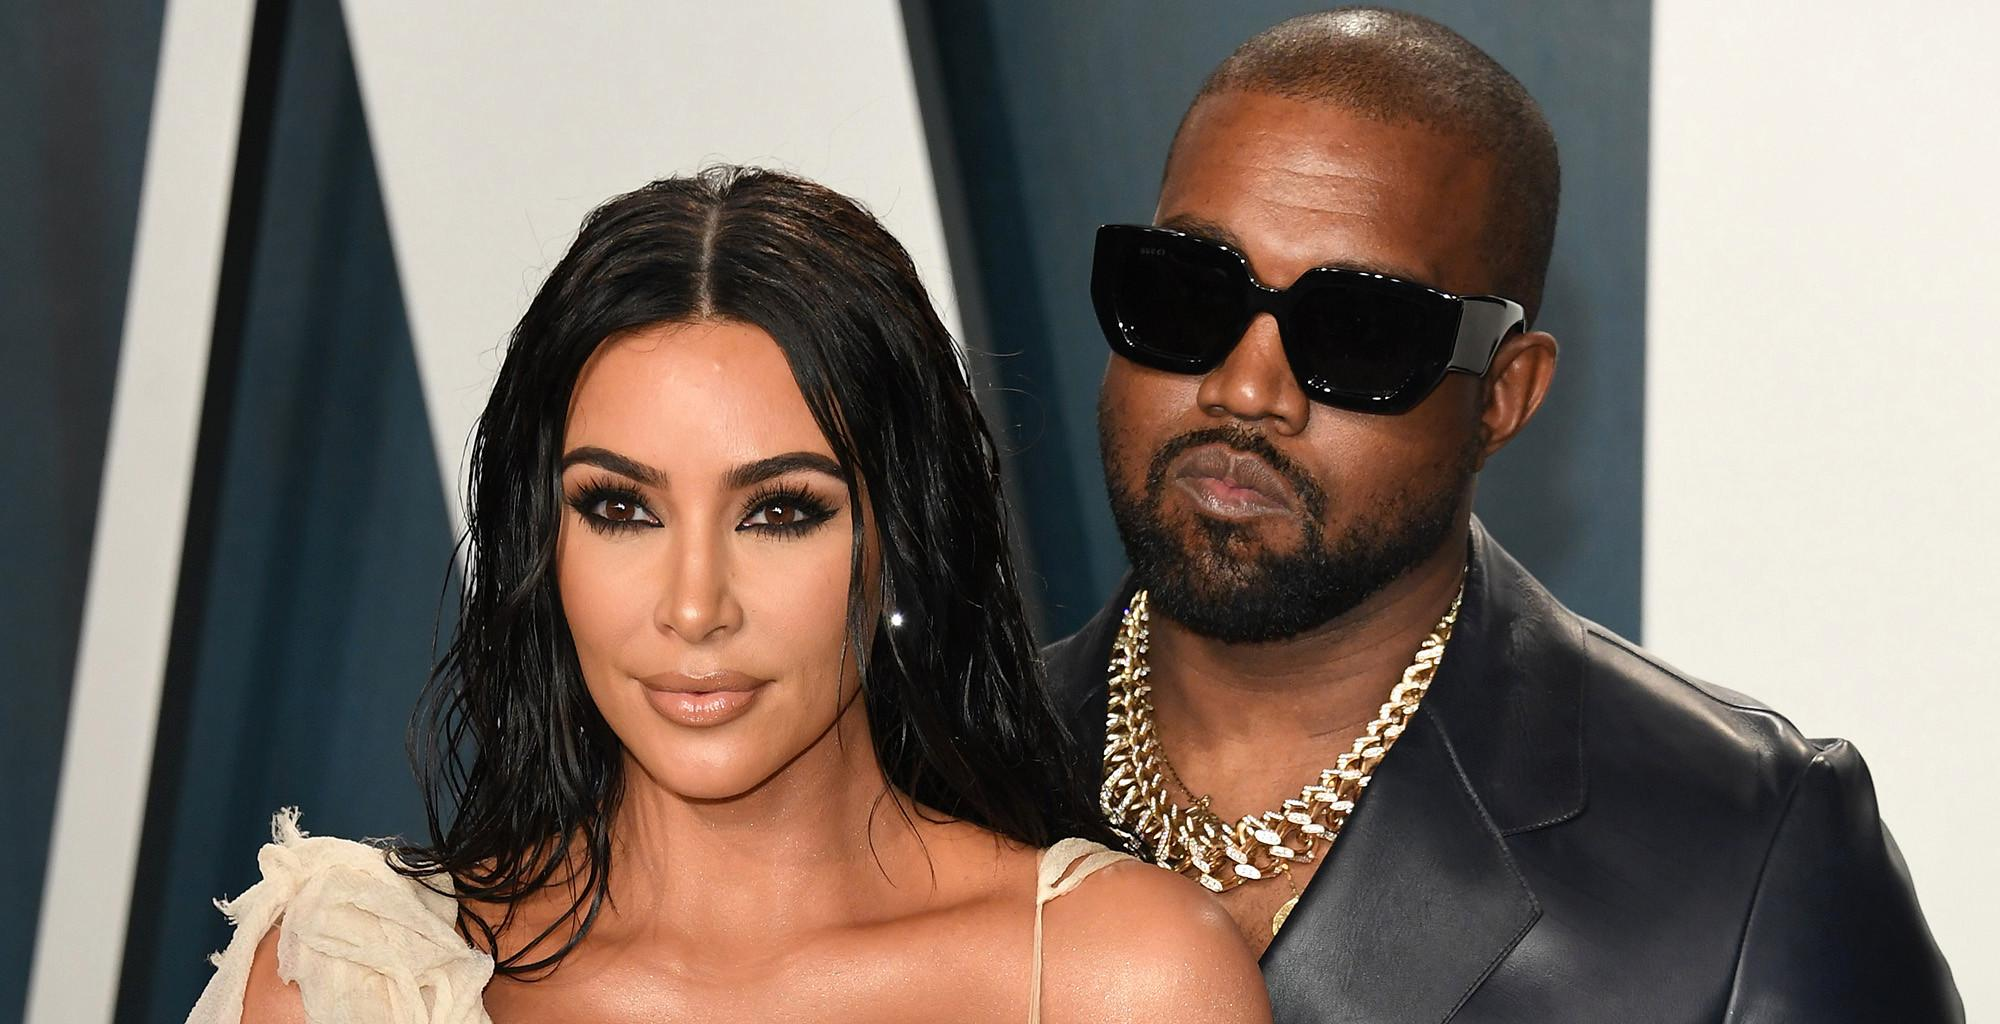 KUWTK: Here's Why Kim Kardashian Will Support Kanye West's Potential Presidential Bid No Matter What Others May Say!